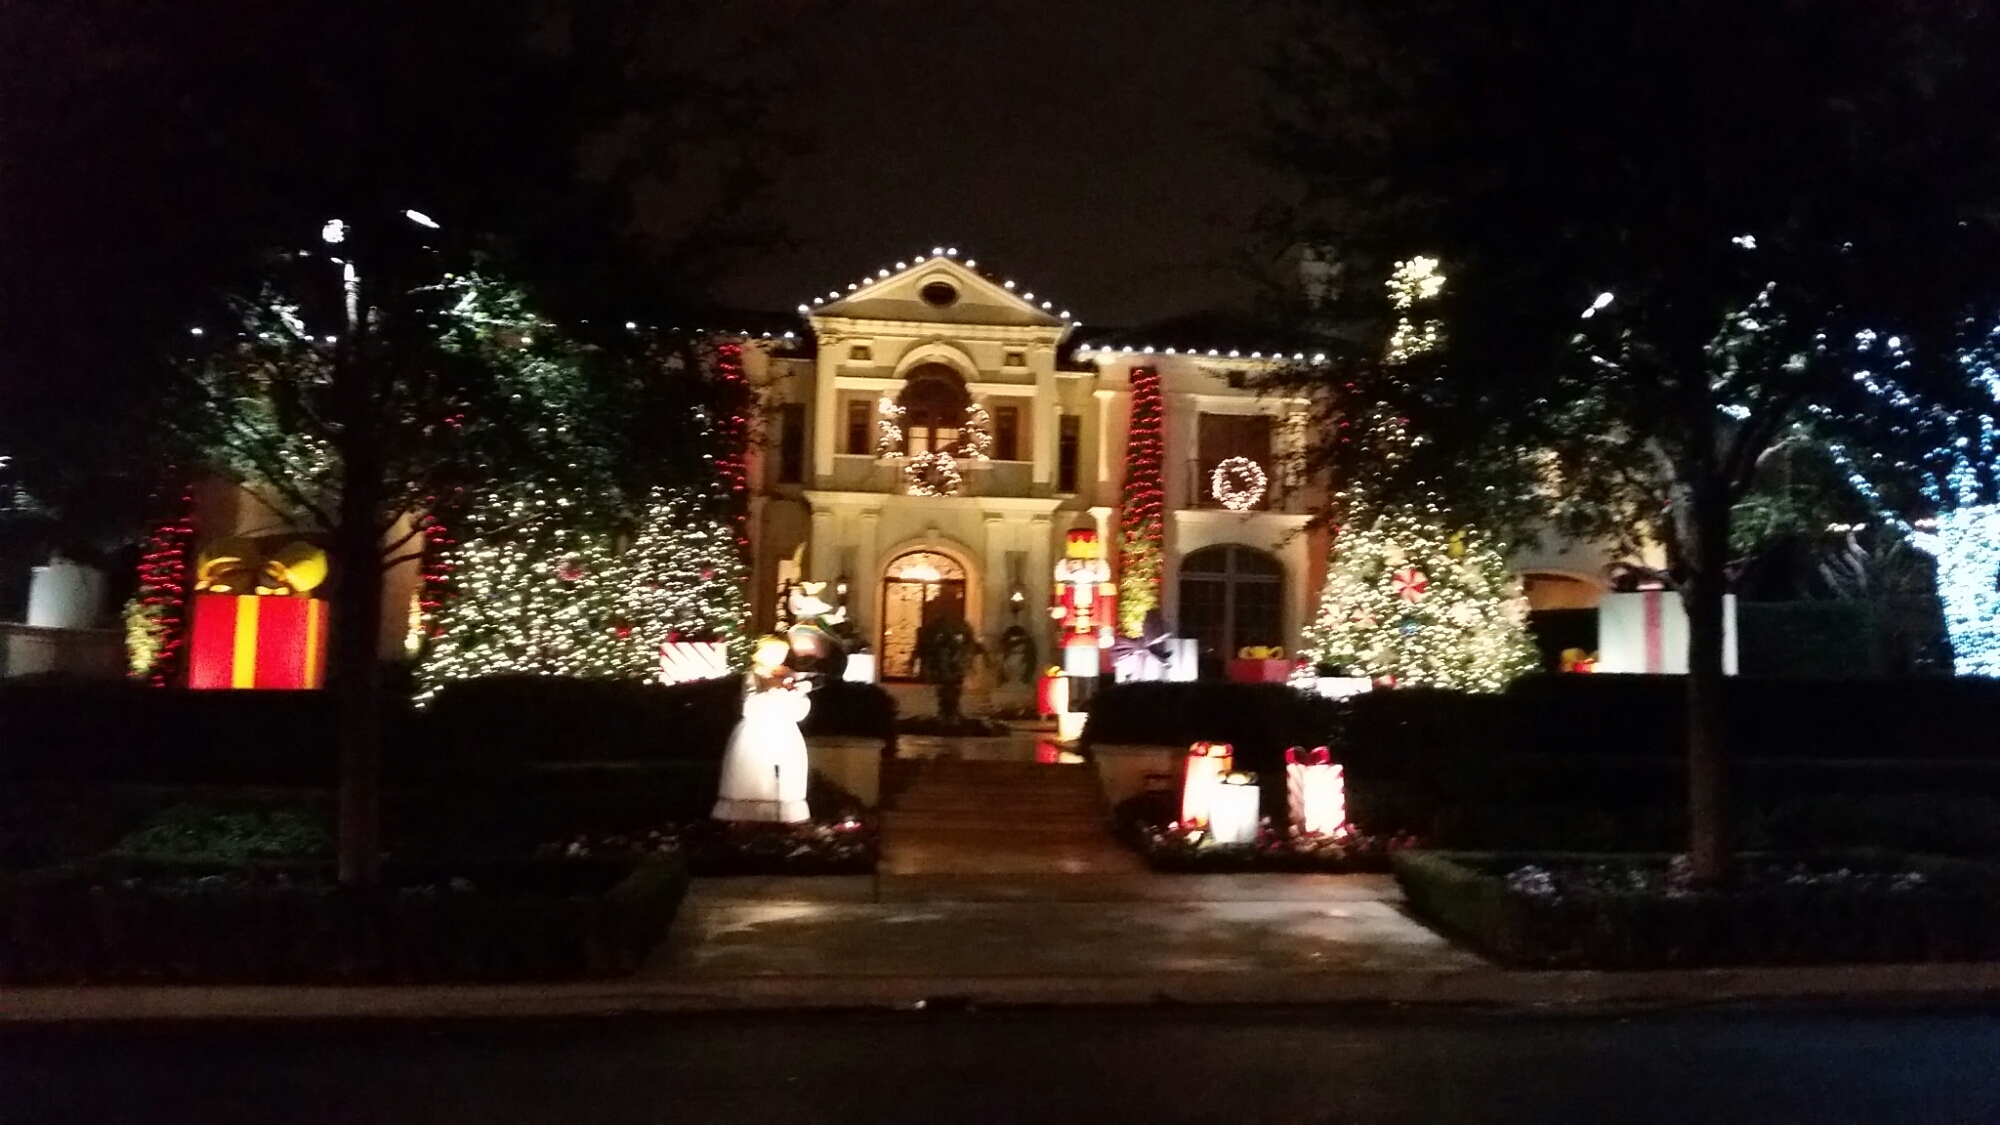 Elegant Christmas Lights Sparkle In The Night As You Drive Down The Street.  Wpid 20141226_194952 Awesome Ideas